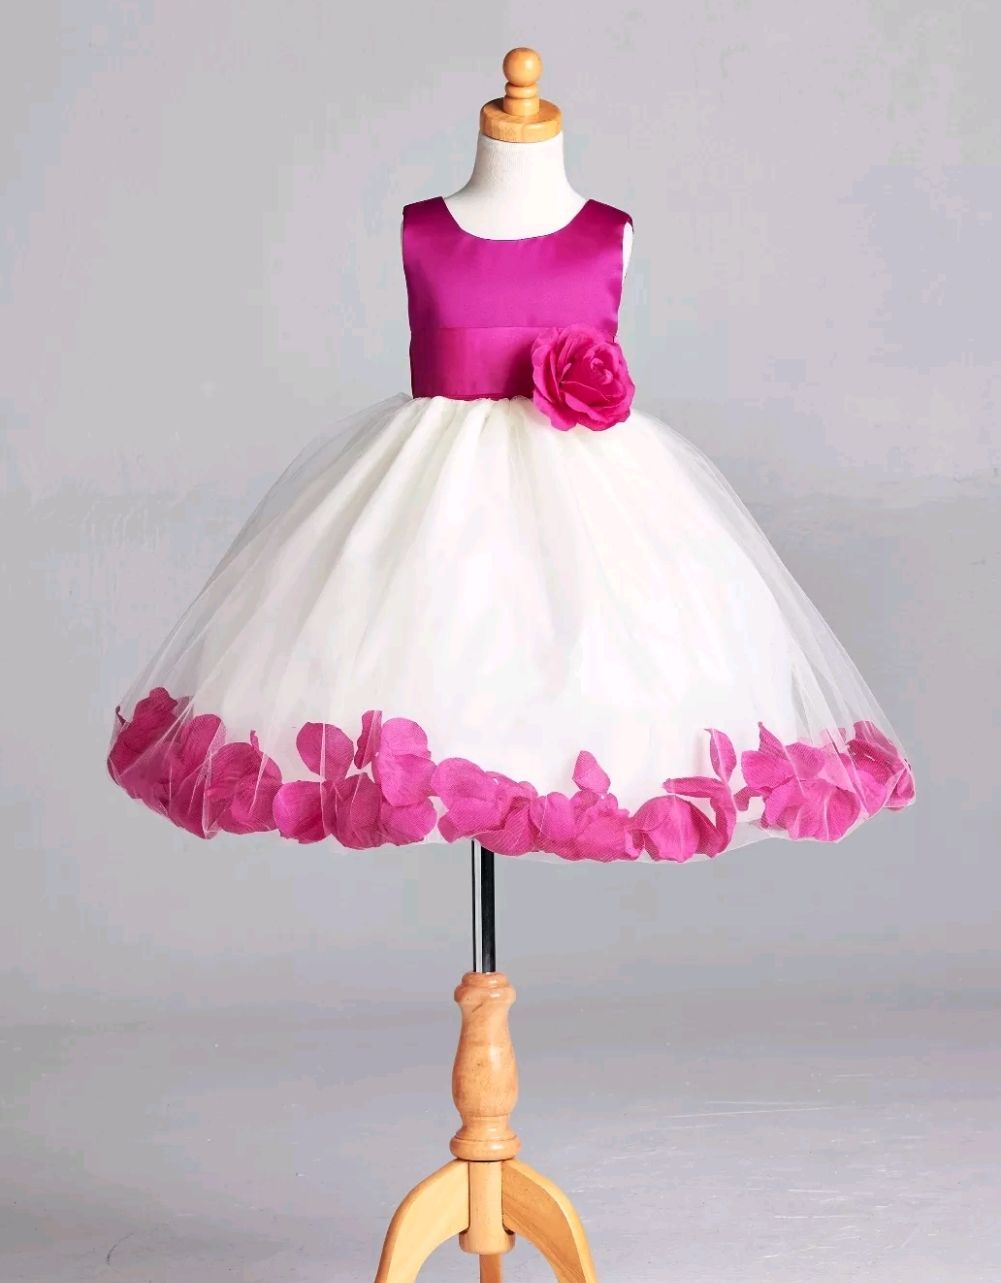 b2bc7fd5000 cosmicturtleboutique - Rose pedal puffy tulle dress